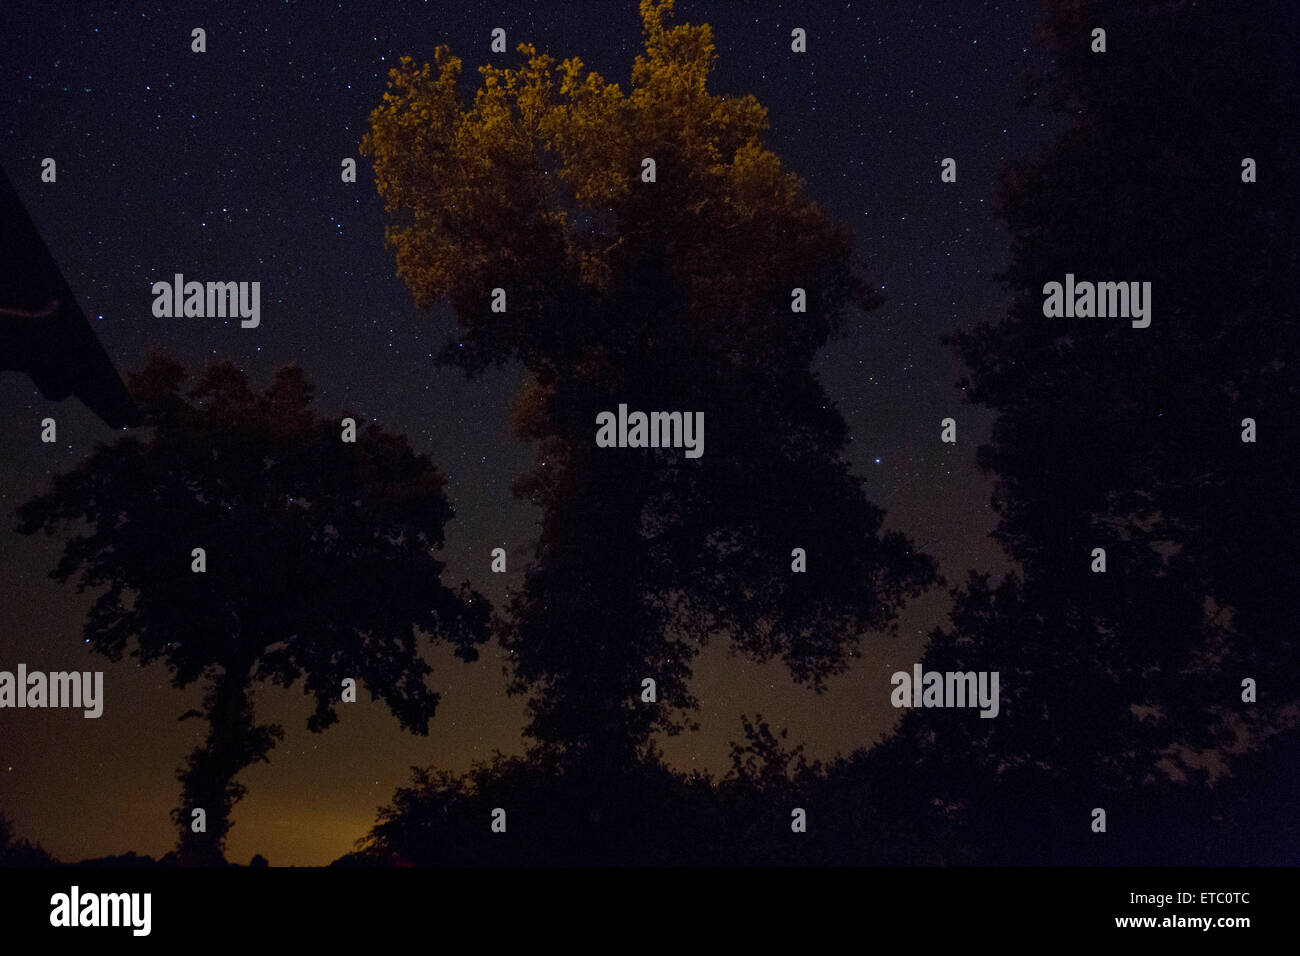 Night sky with stars and silhouetted trees - Stock Image